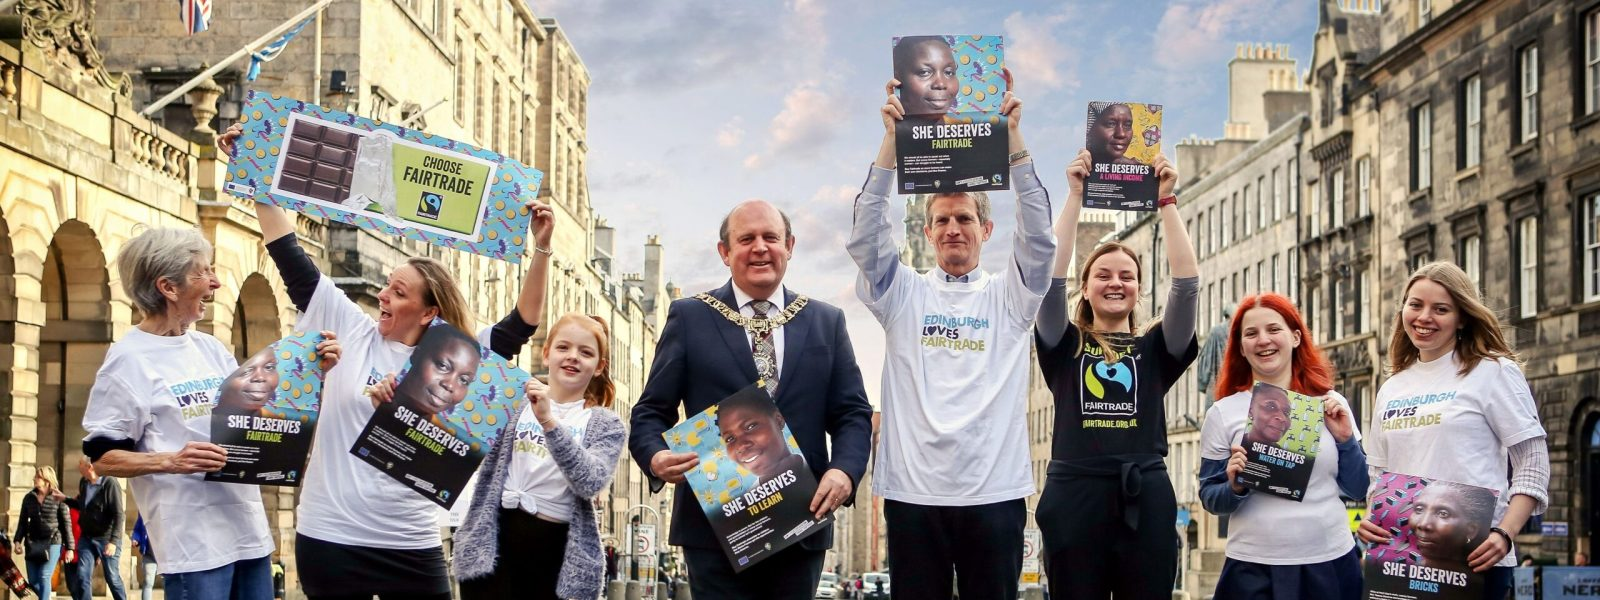 A group of campaigners standing in a line in Edinburgh holding Fair Trade posters